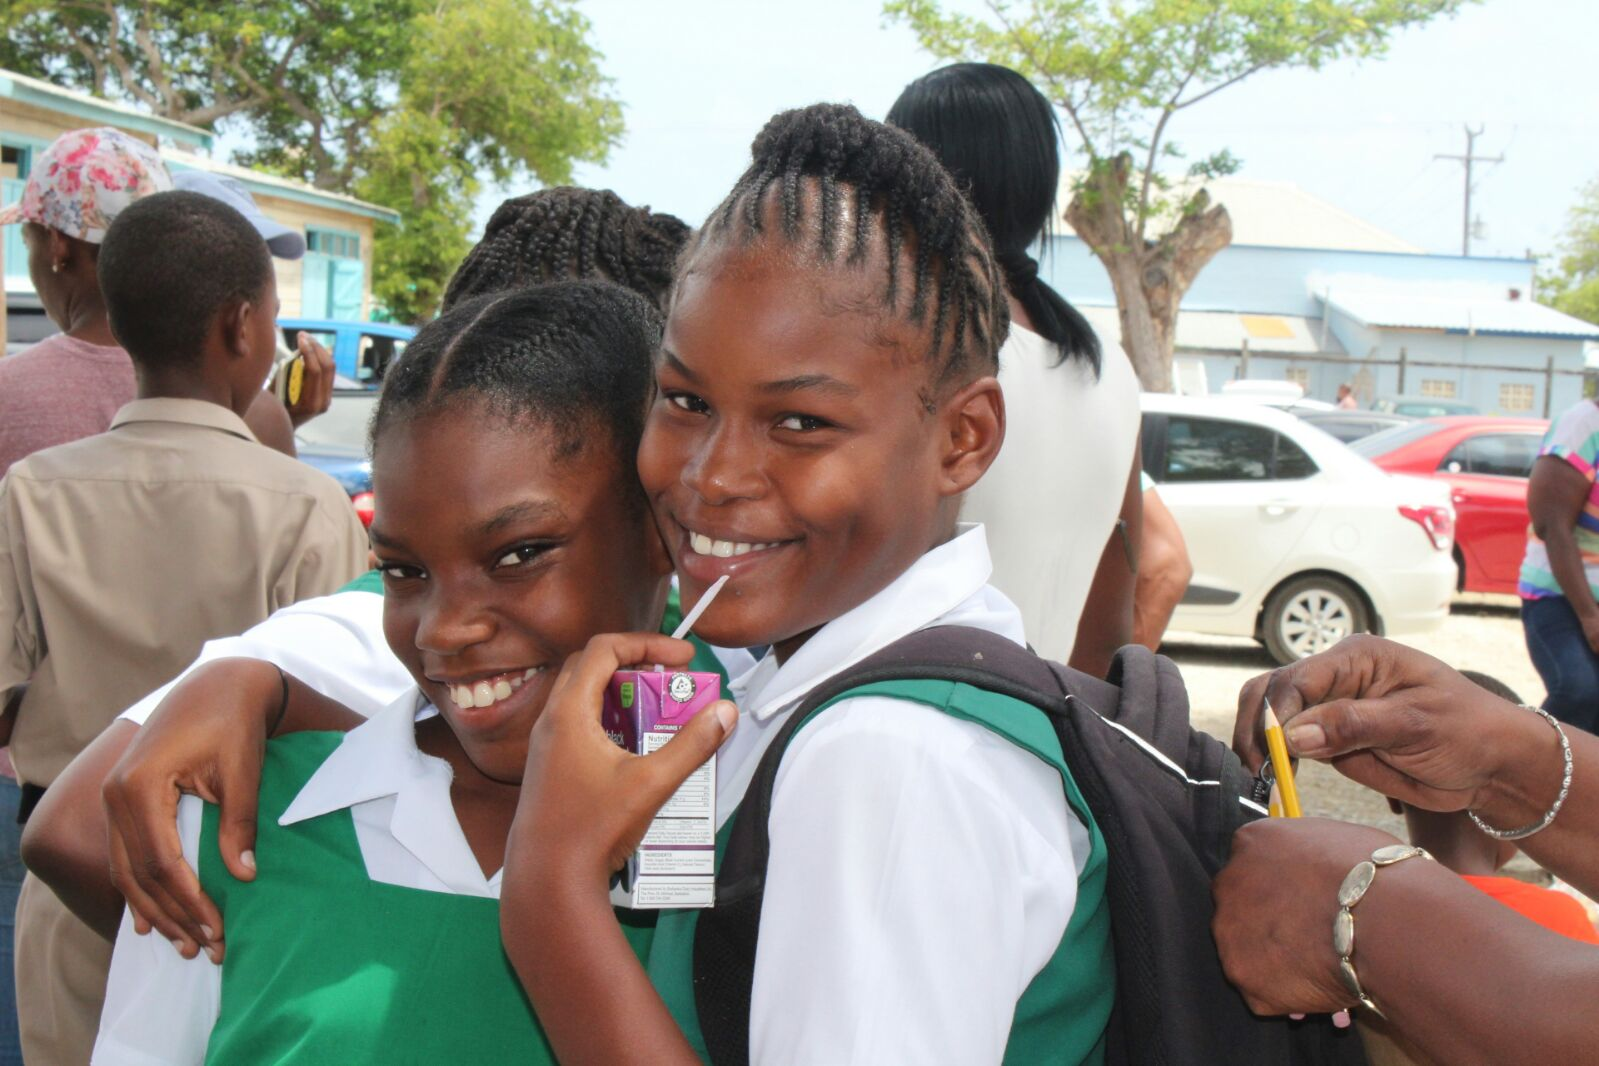 These two girls from St Catherine's were elated that the exam was out of the way